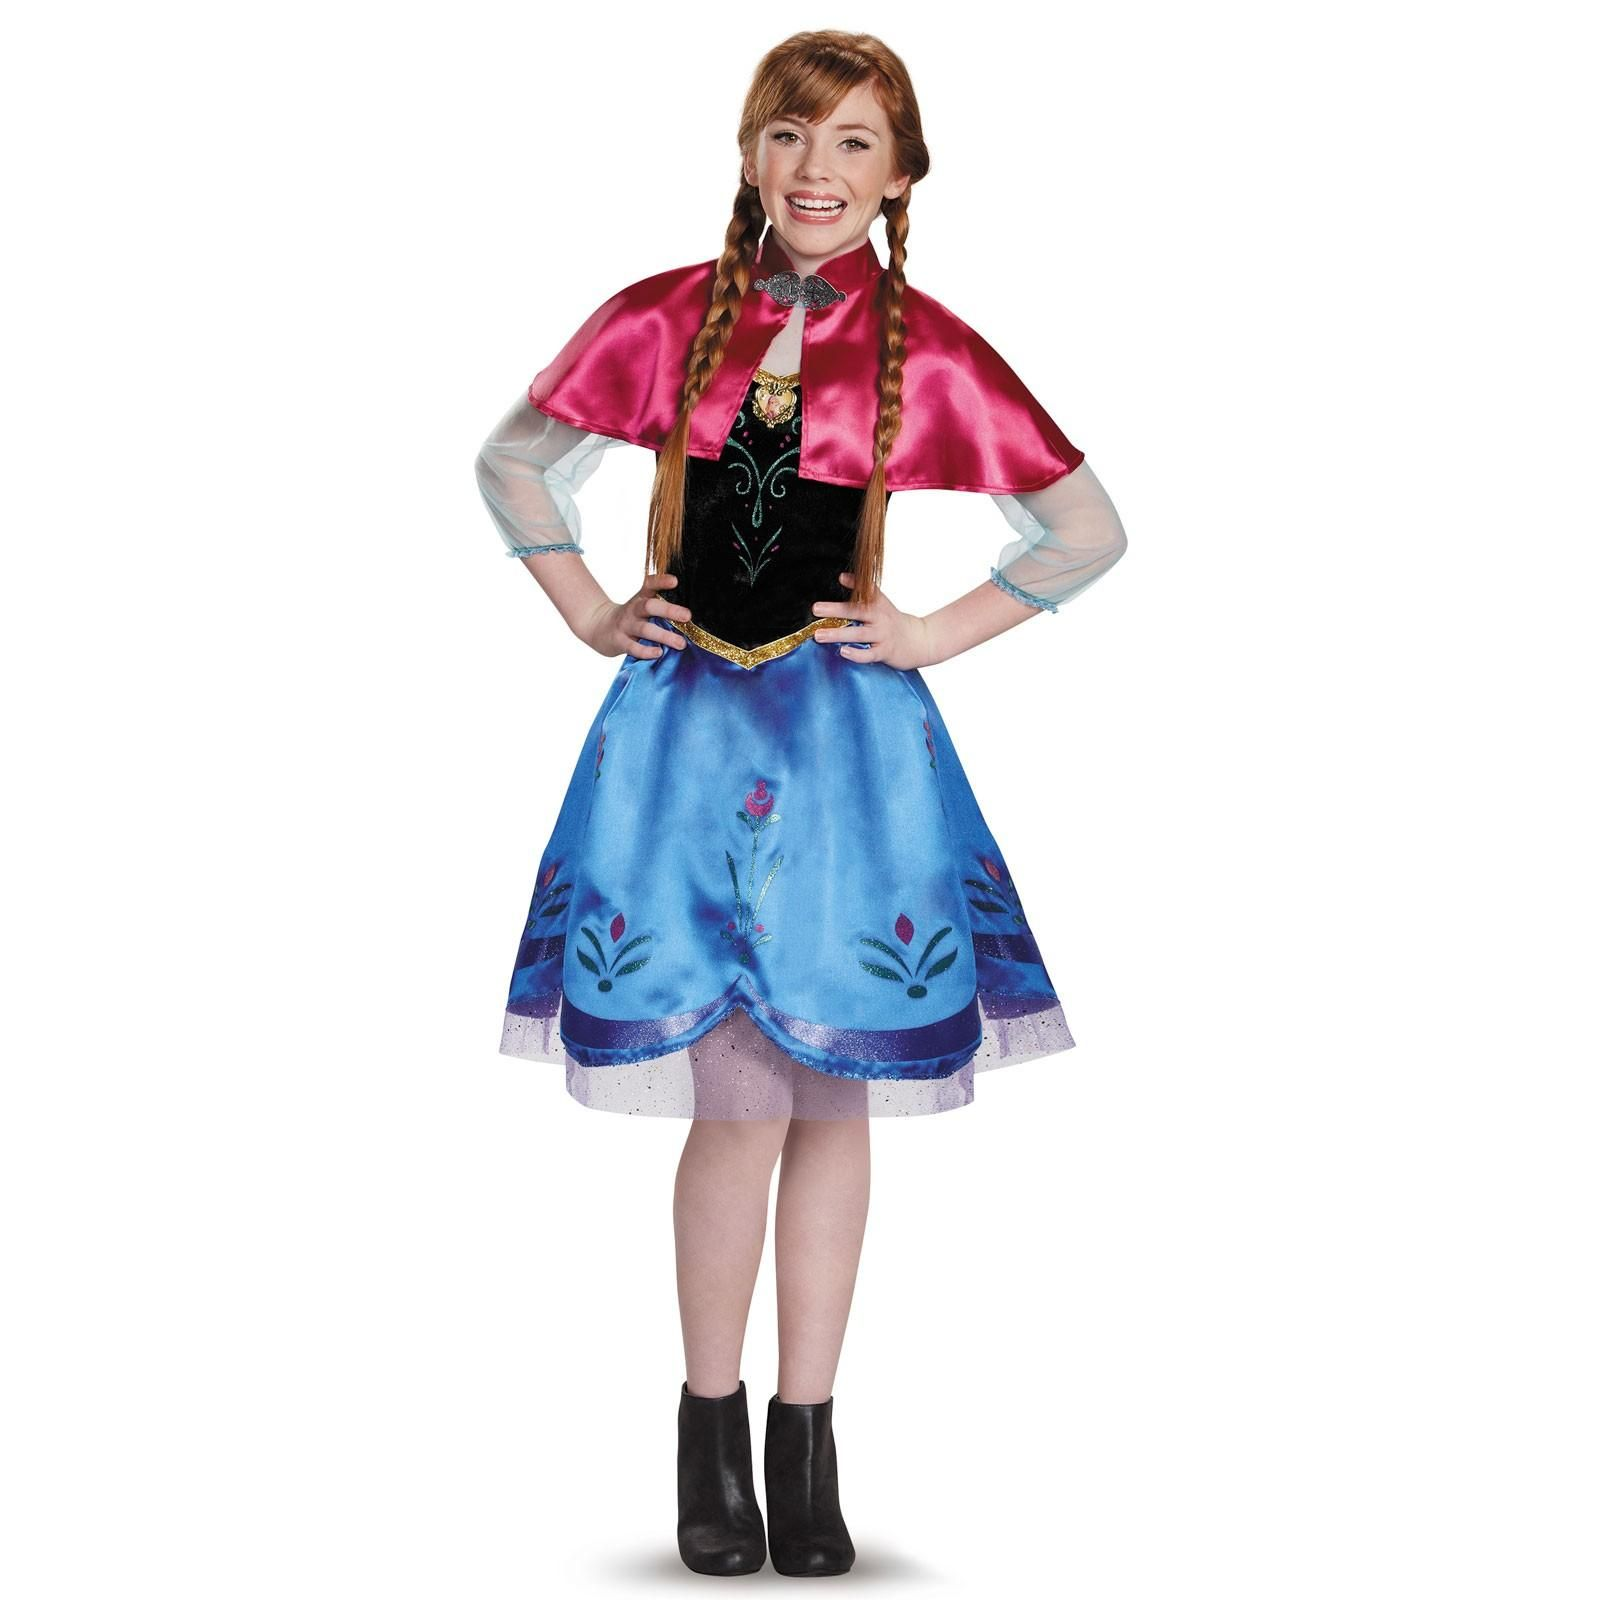 This Frozen Traveling Anna Tween Costume includes a dress with character cameo and a capelet perfect for Halloween Frozen themed events and singing along ...  sc 1 st  Pinterest & Frozen: Tween Anna Traveling Gown Costume | halloween 2014 ...